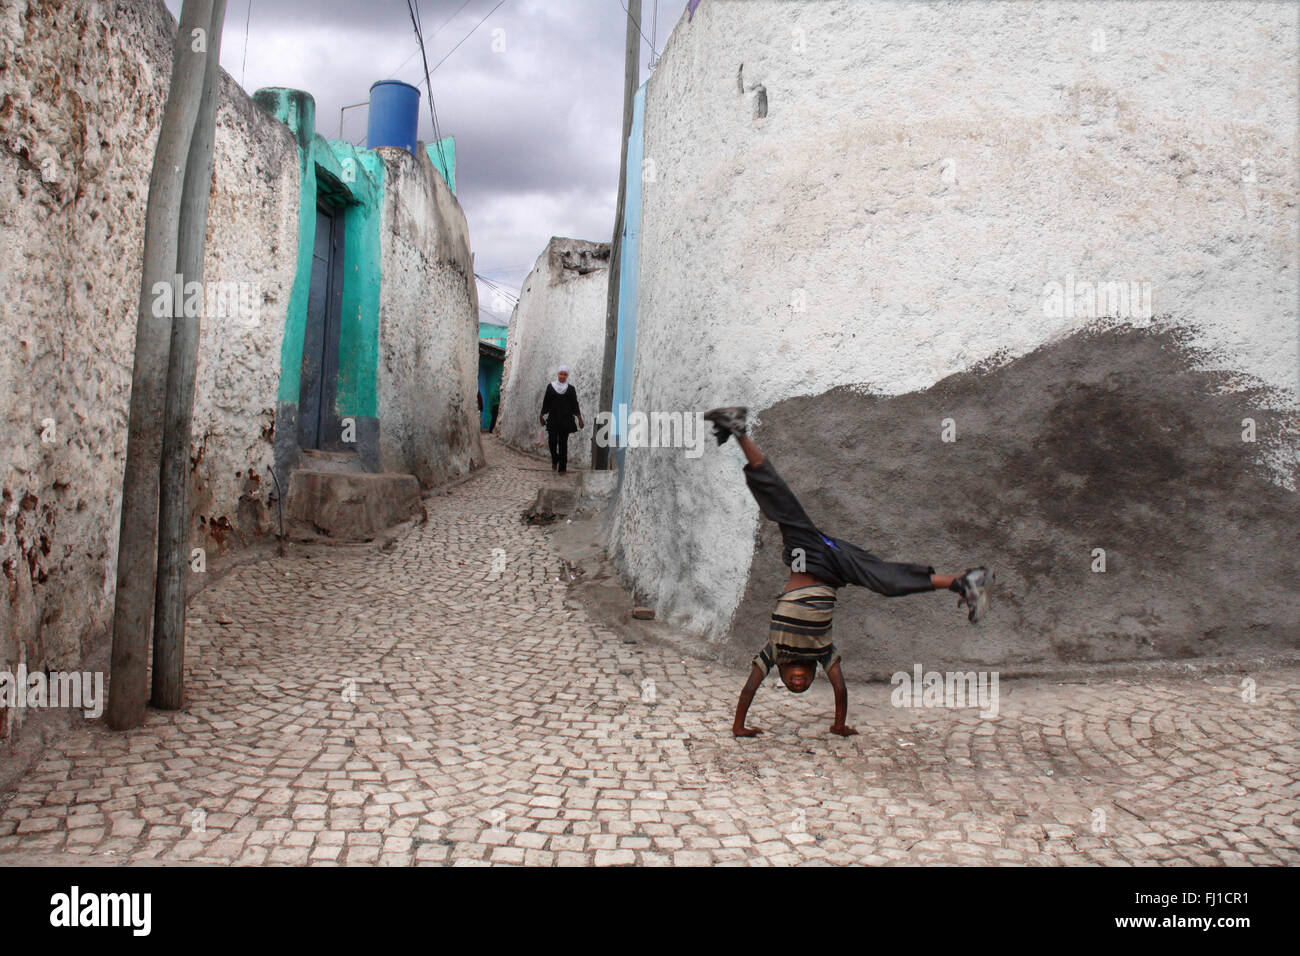 A Kid is playing in a street of the old city of Harar , Ethiopia - Stock Image